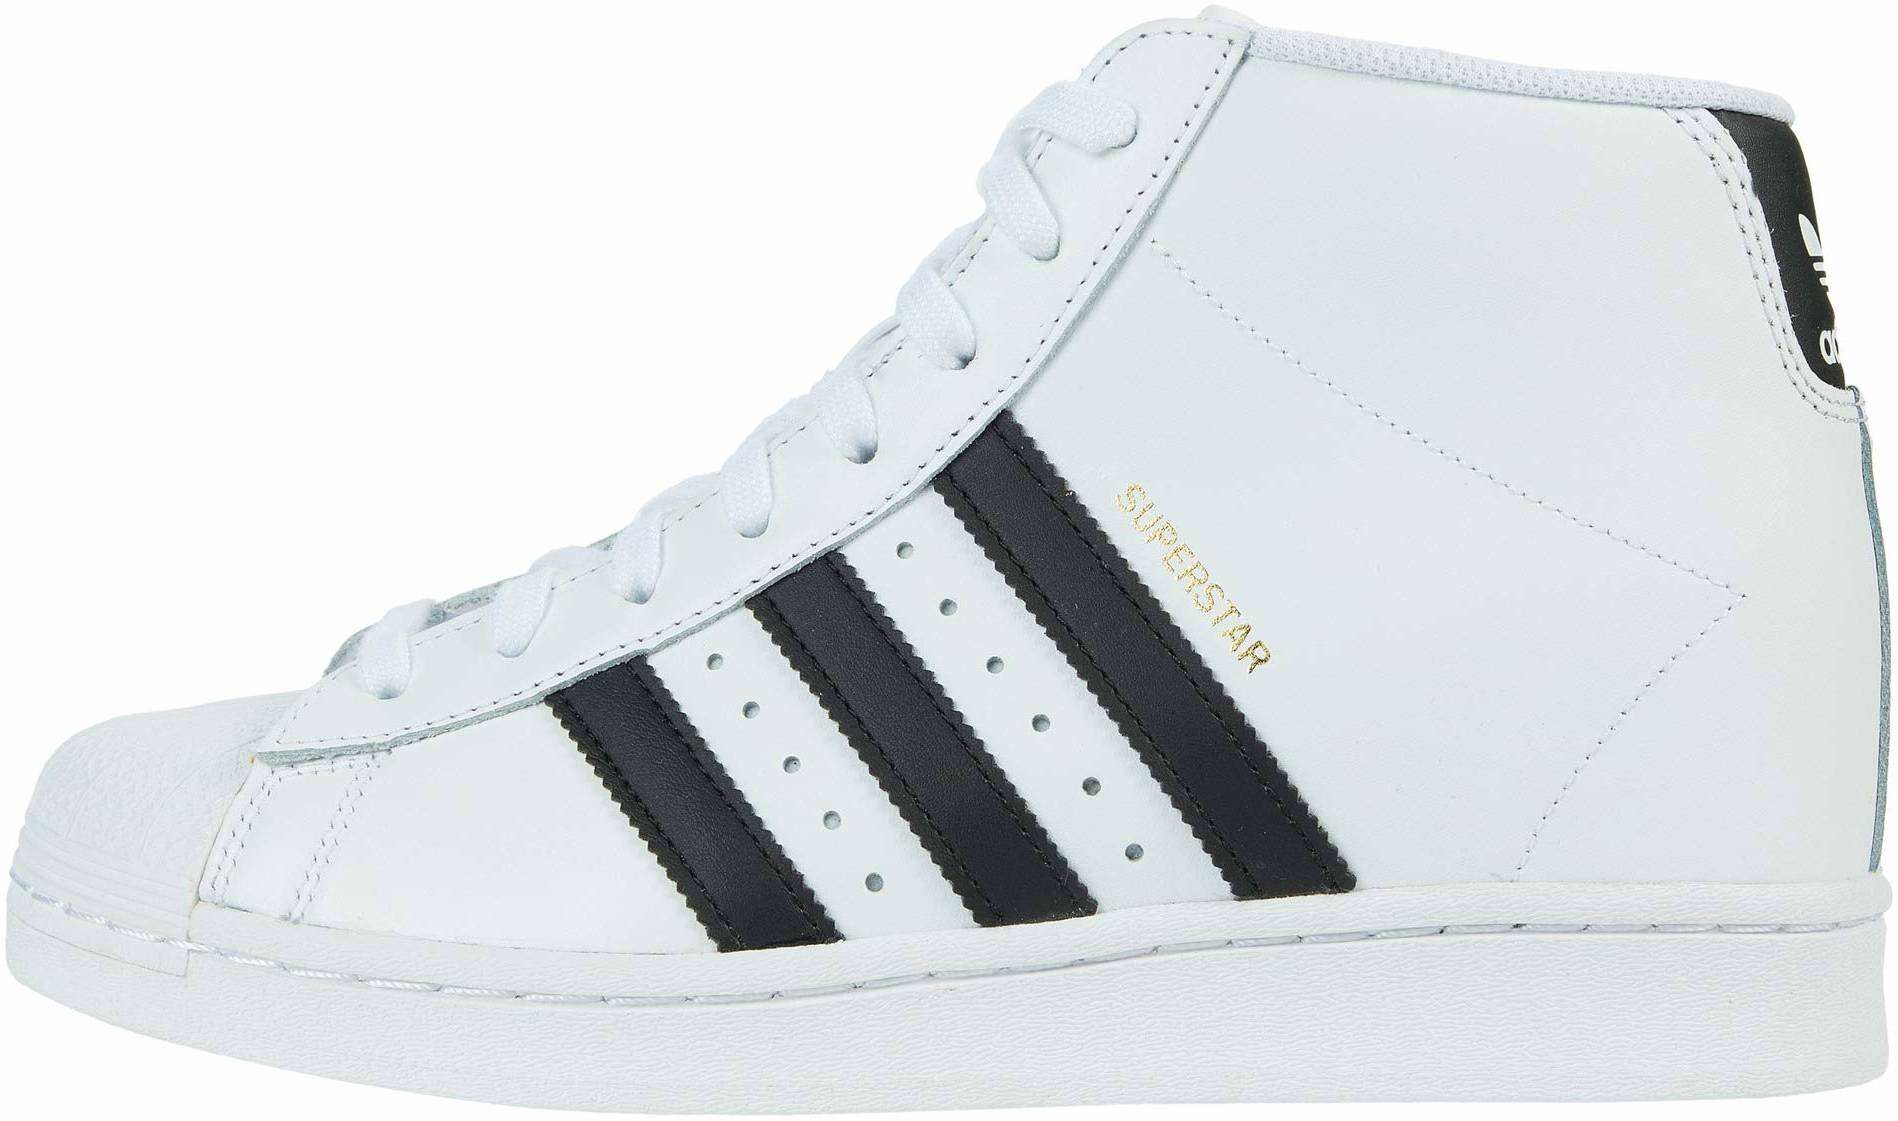 Adidas Superstar UP sneakers in 3 colors (only $58)   RunRepeat